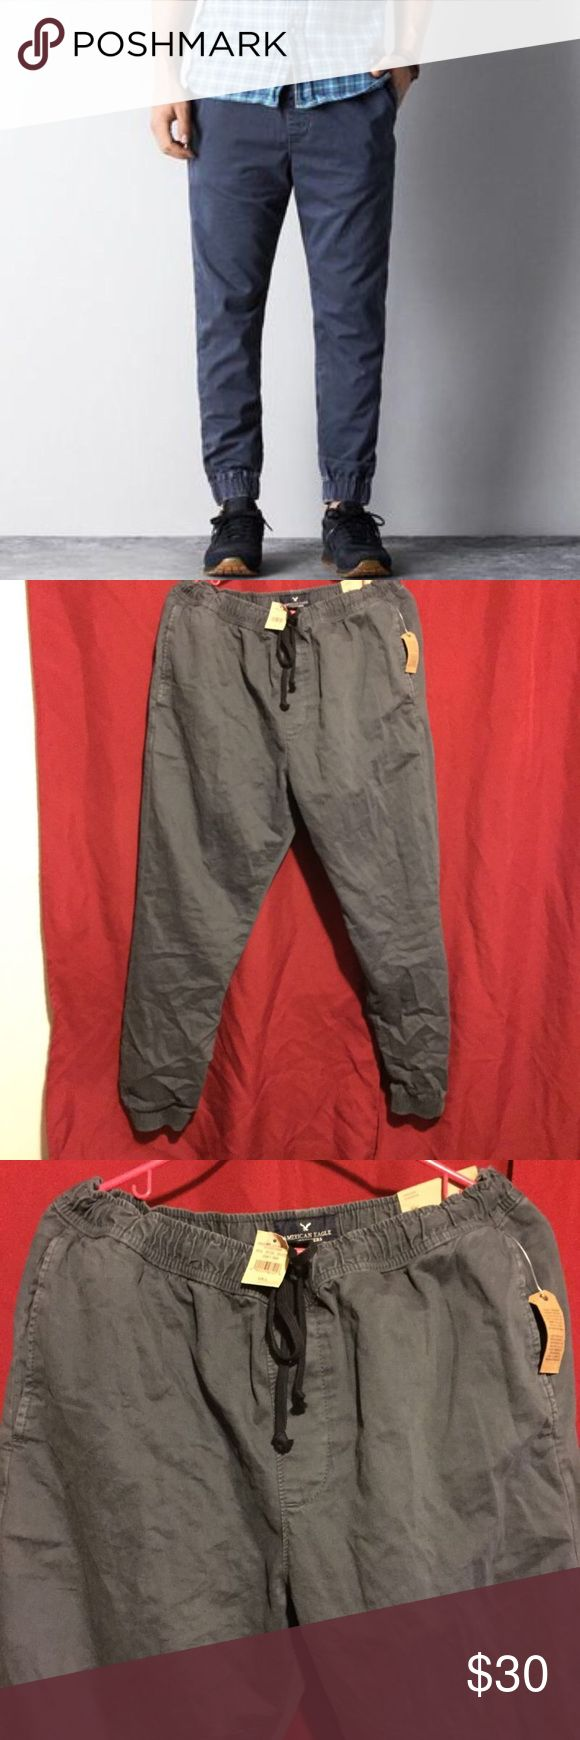 American Eagle Mens Drawstring Khaki Joggers American Eagle Outfitters Mens drawstring joggers. Size large. Dust navy. New with tags.   ALSO SELLING ANOTHER PAIR IN GREEN. American Eagle Outfitters Pants Track Pants & Joggers